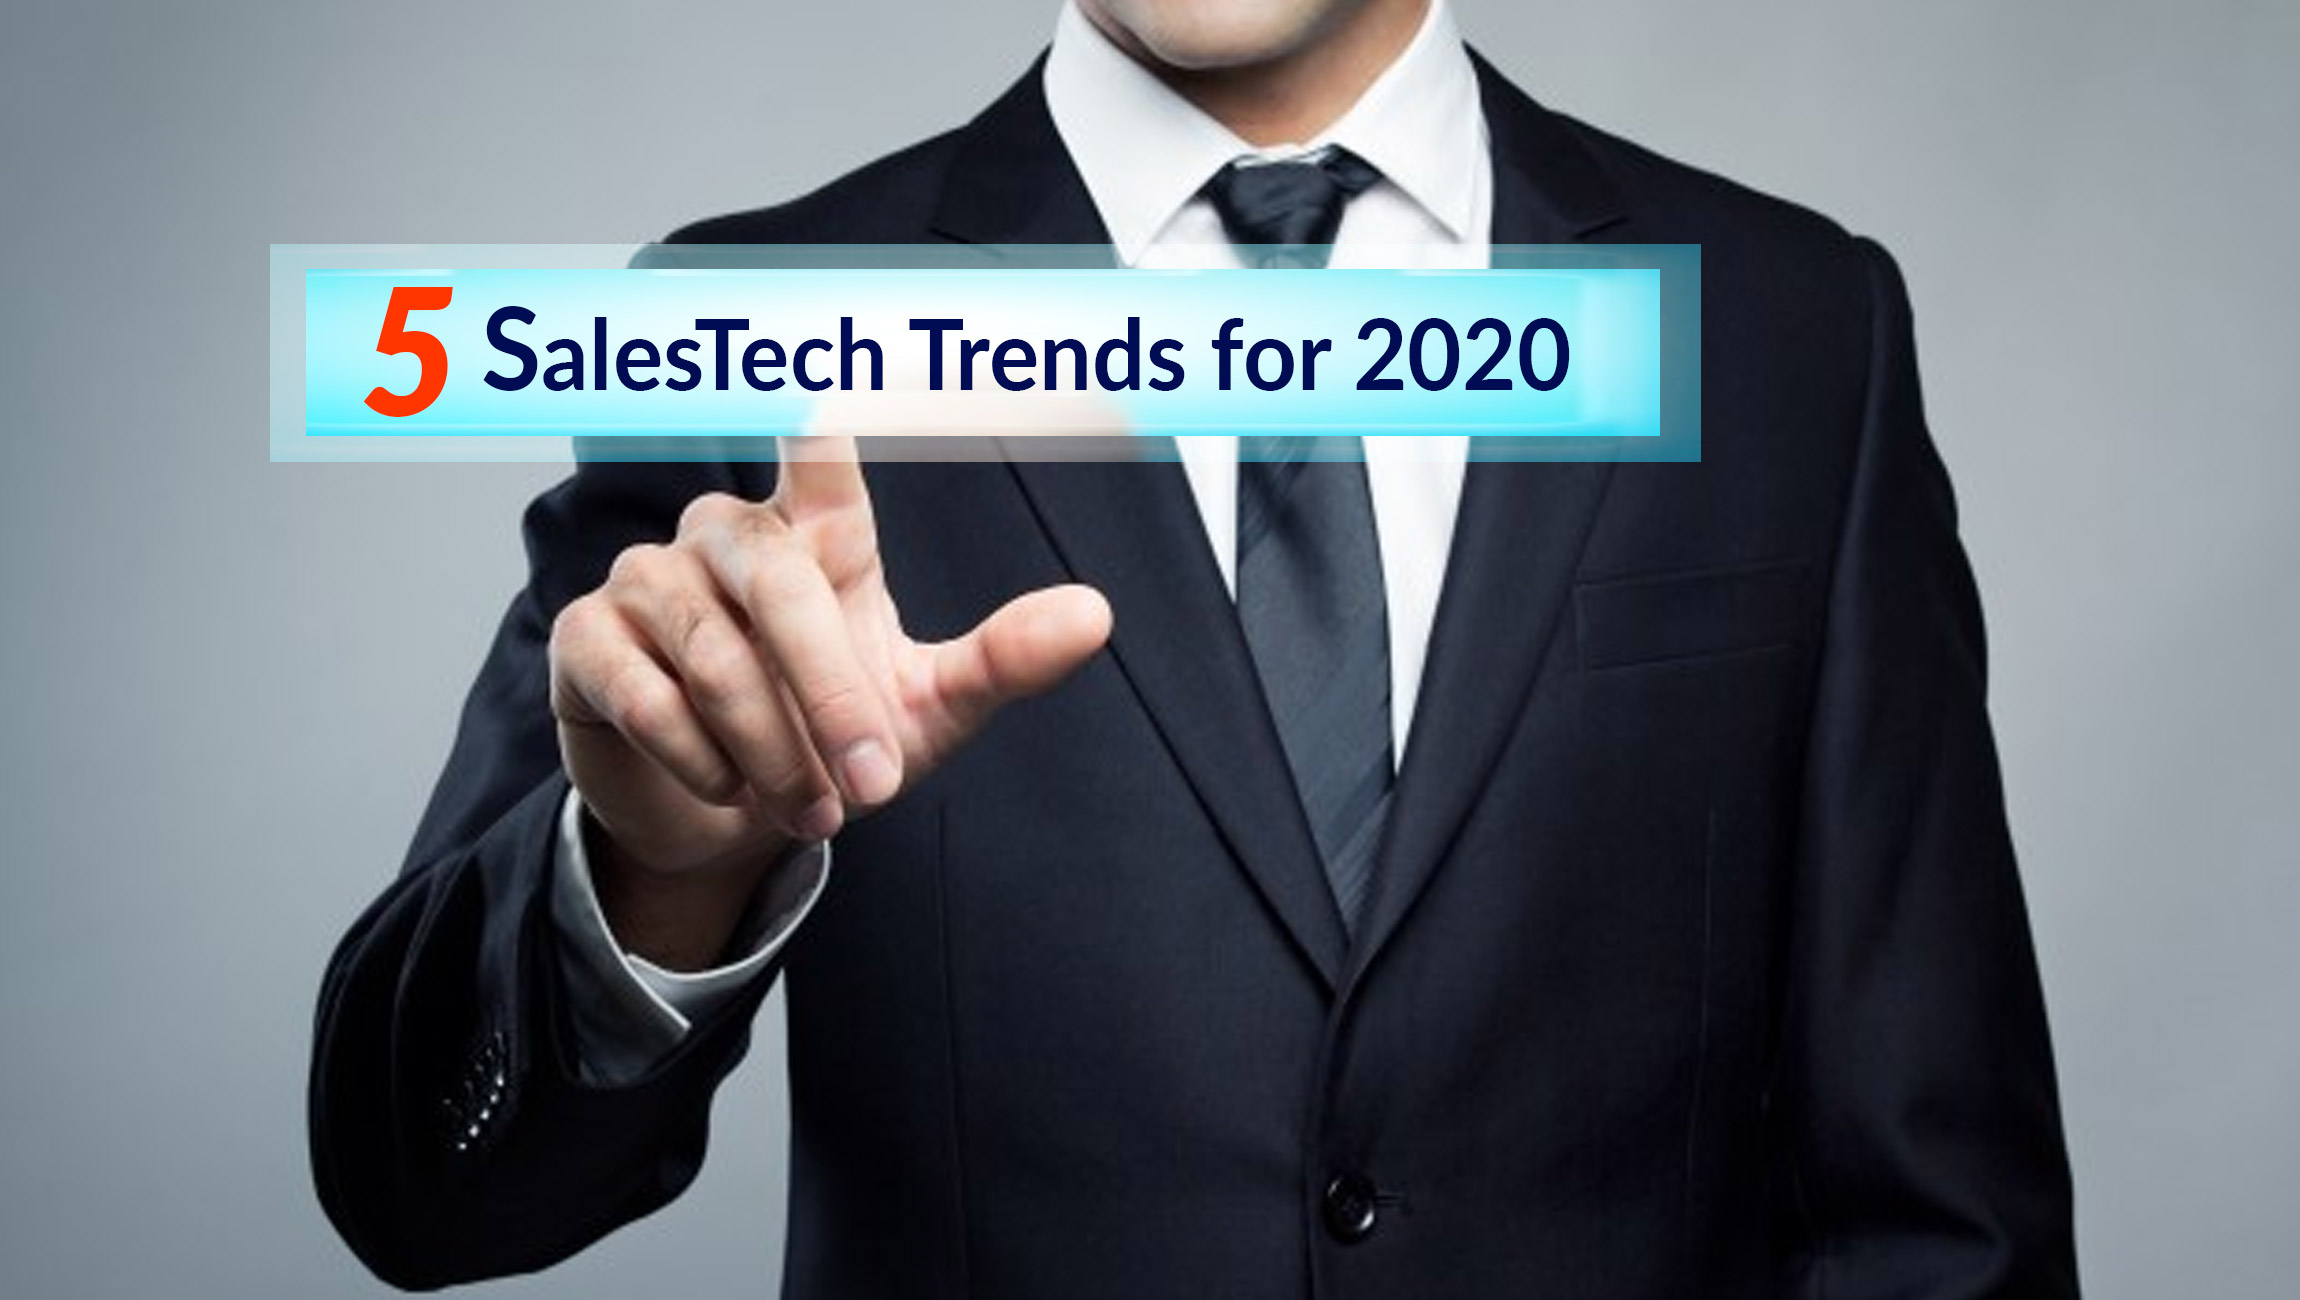 Top 5 SalesTech Trends for 2020